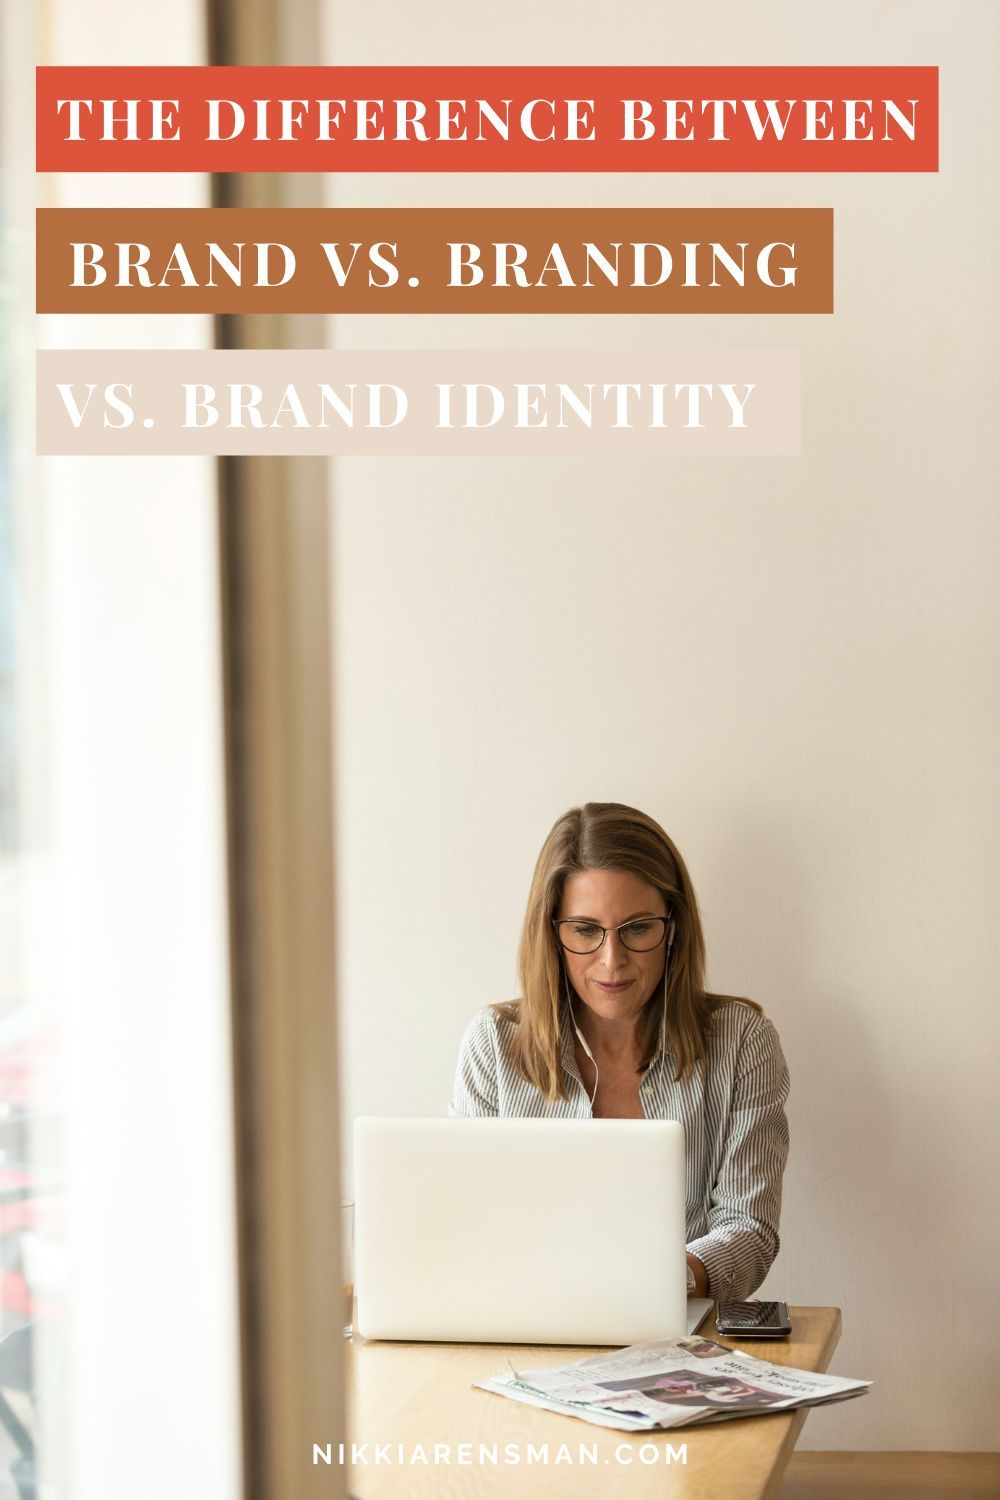 Us woman entrepeneur's need to know the difference in order to serve our ideal clients better! | Nikki Arensman, Brand Designer and Strategist #brandstrategy #businessideas #creativeentrepreneur